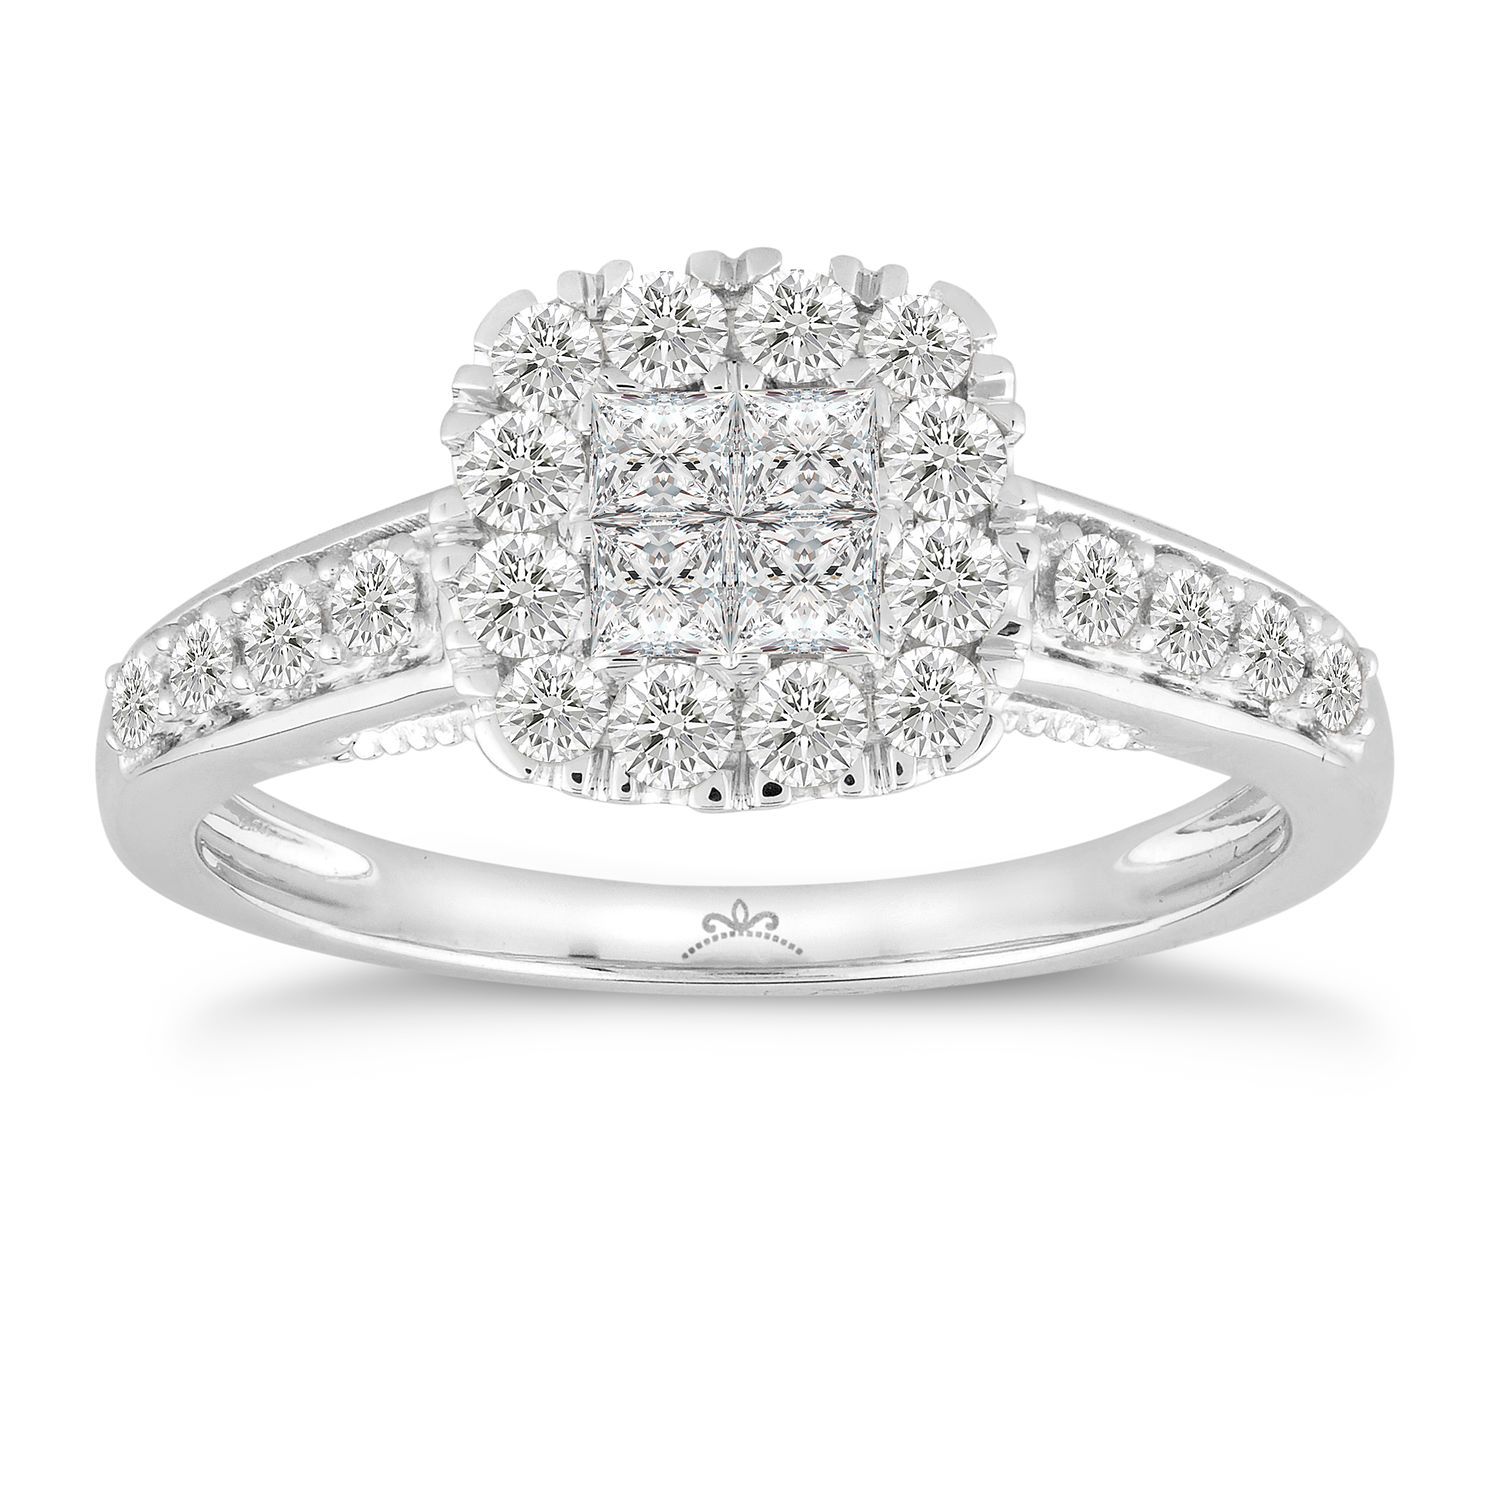 Princessa Platinum 2/3ct Diamond Ring - Product number 5066573